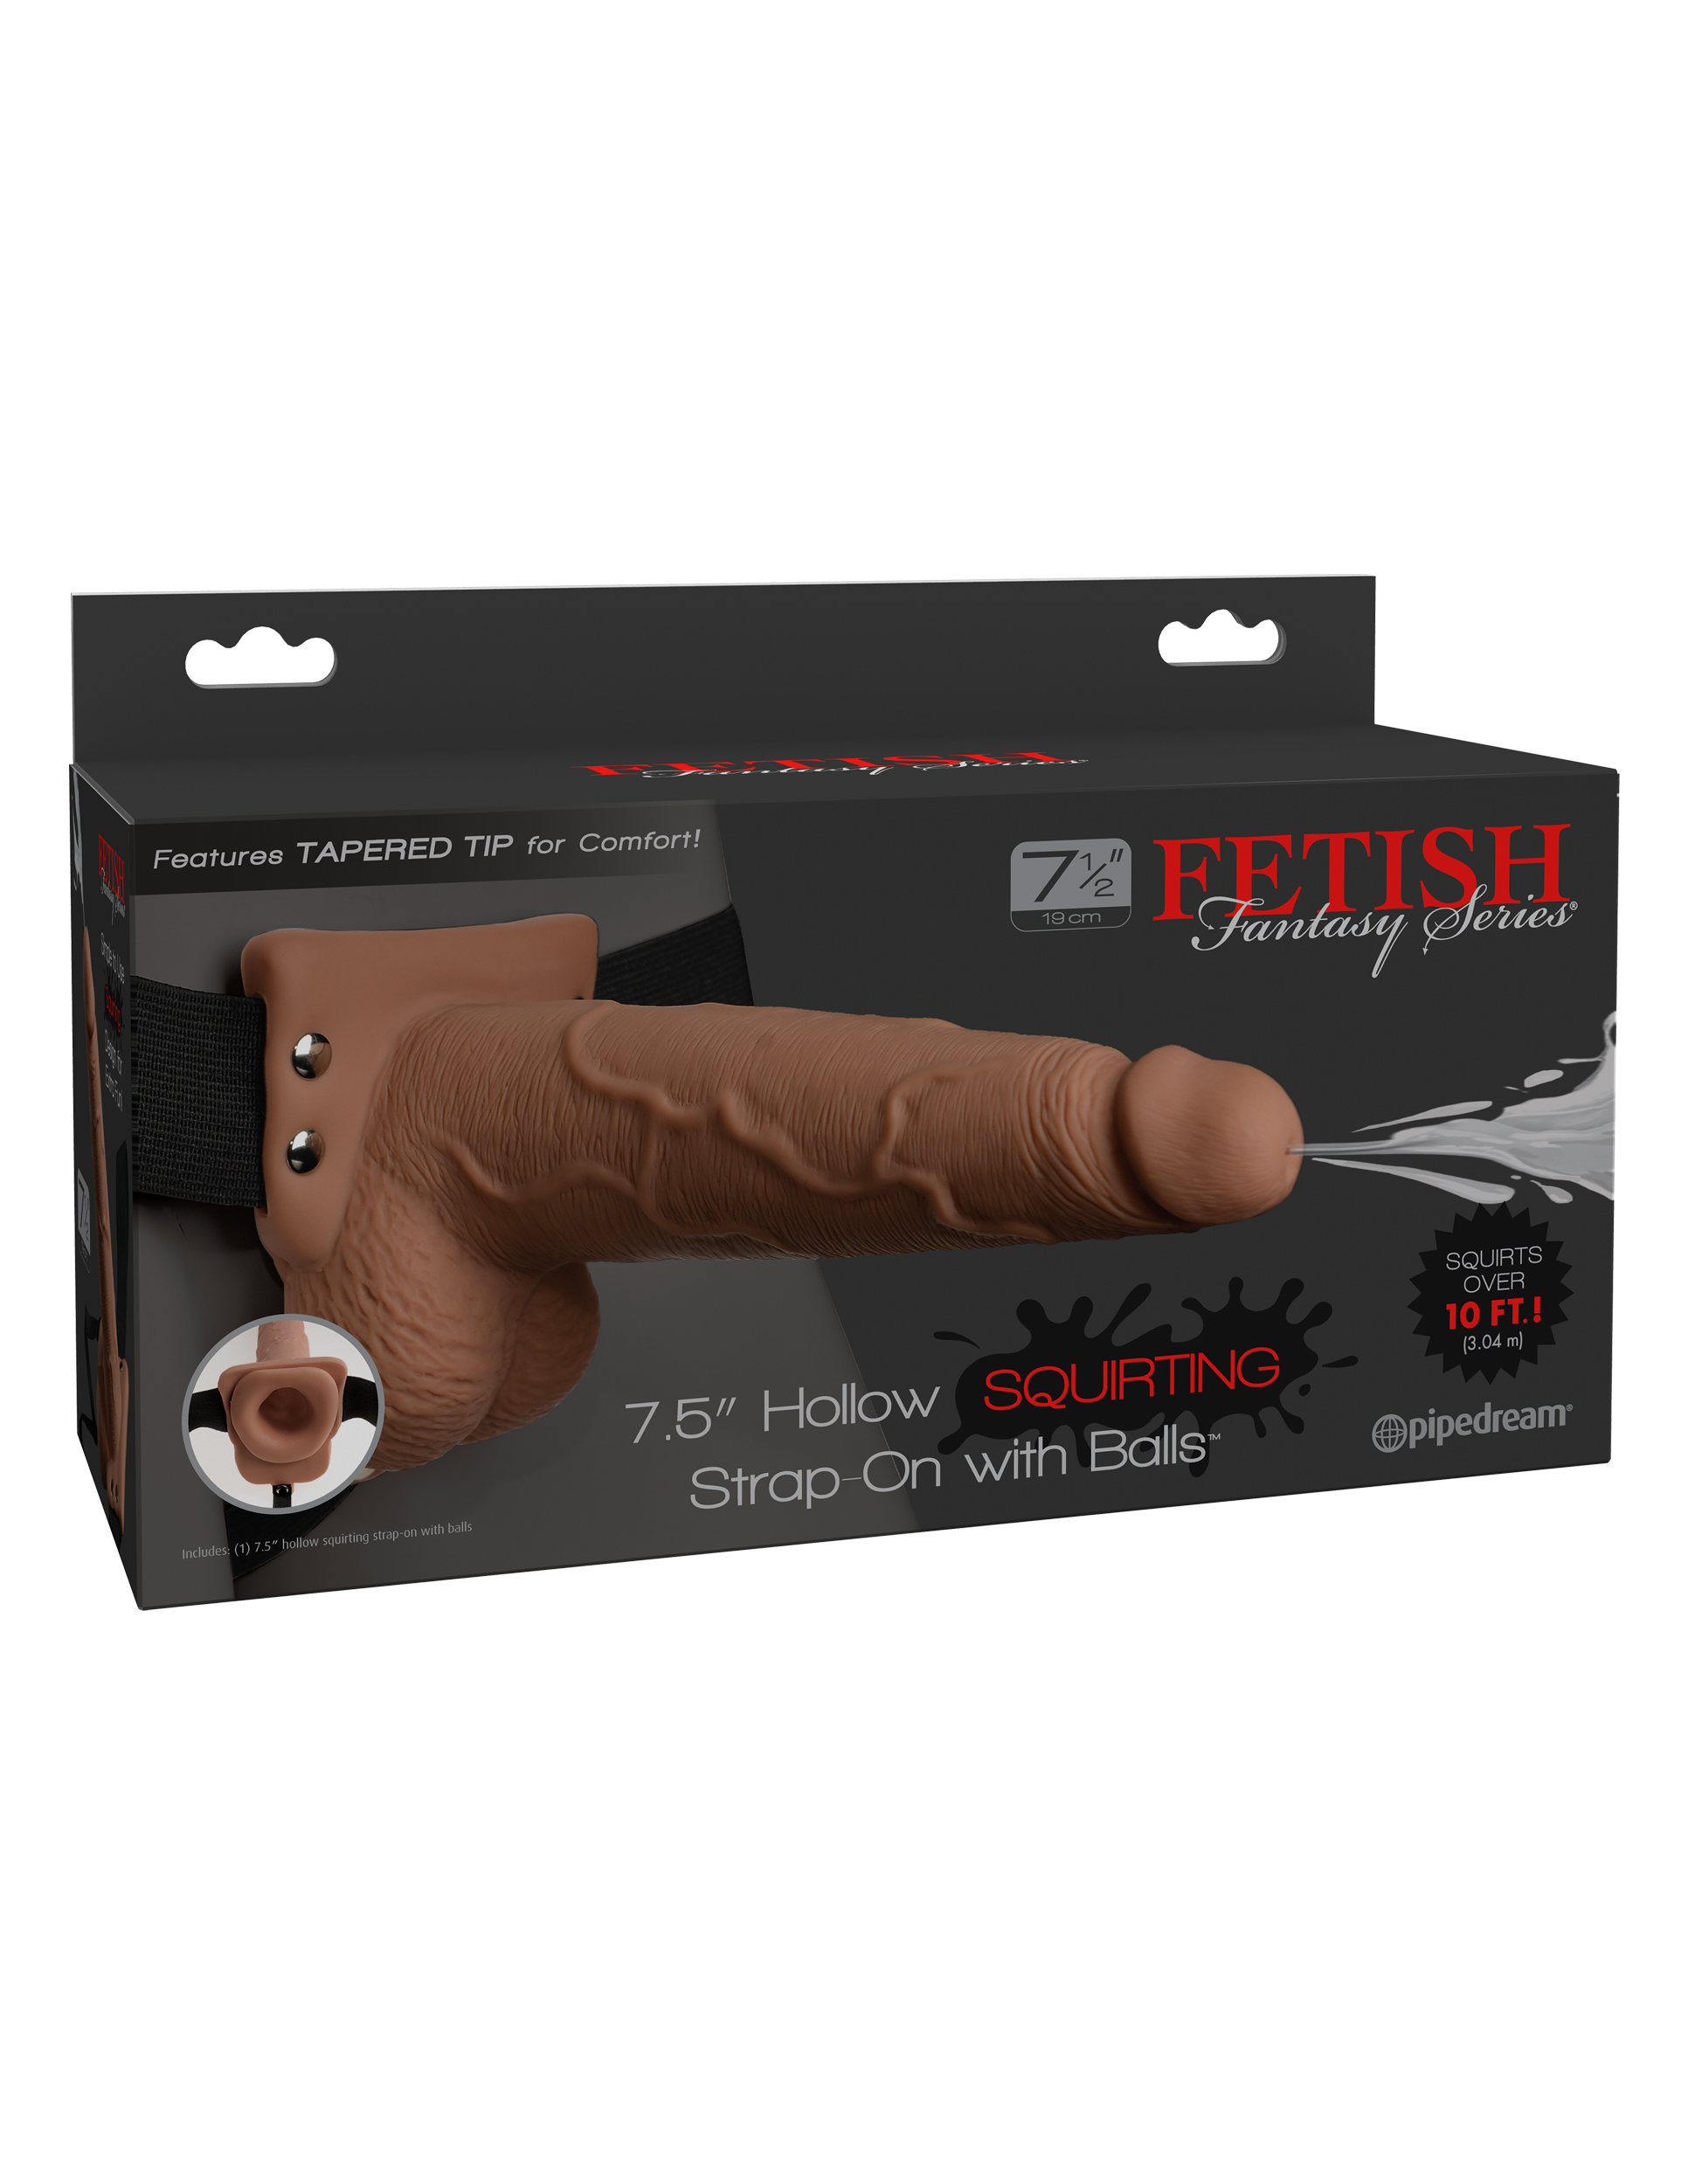 FETISH FANTASY 7.5 IN HOLLOW SQUIRTING STRAP-ON W/ BALLS TAN